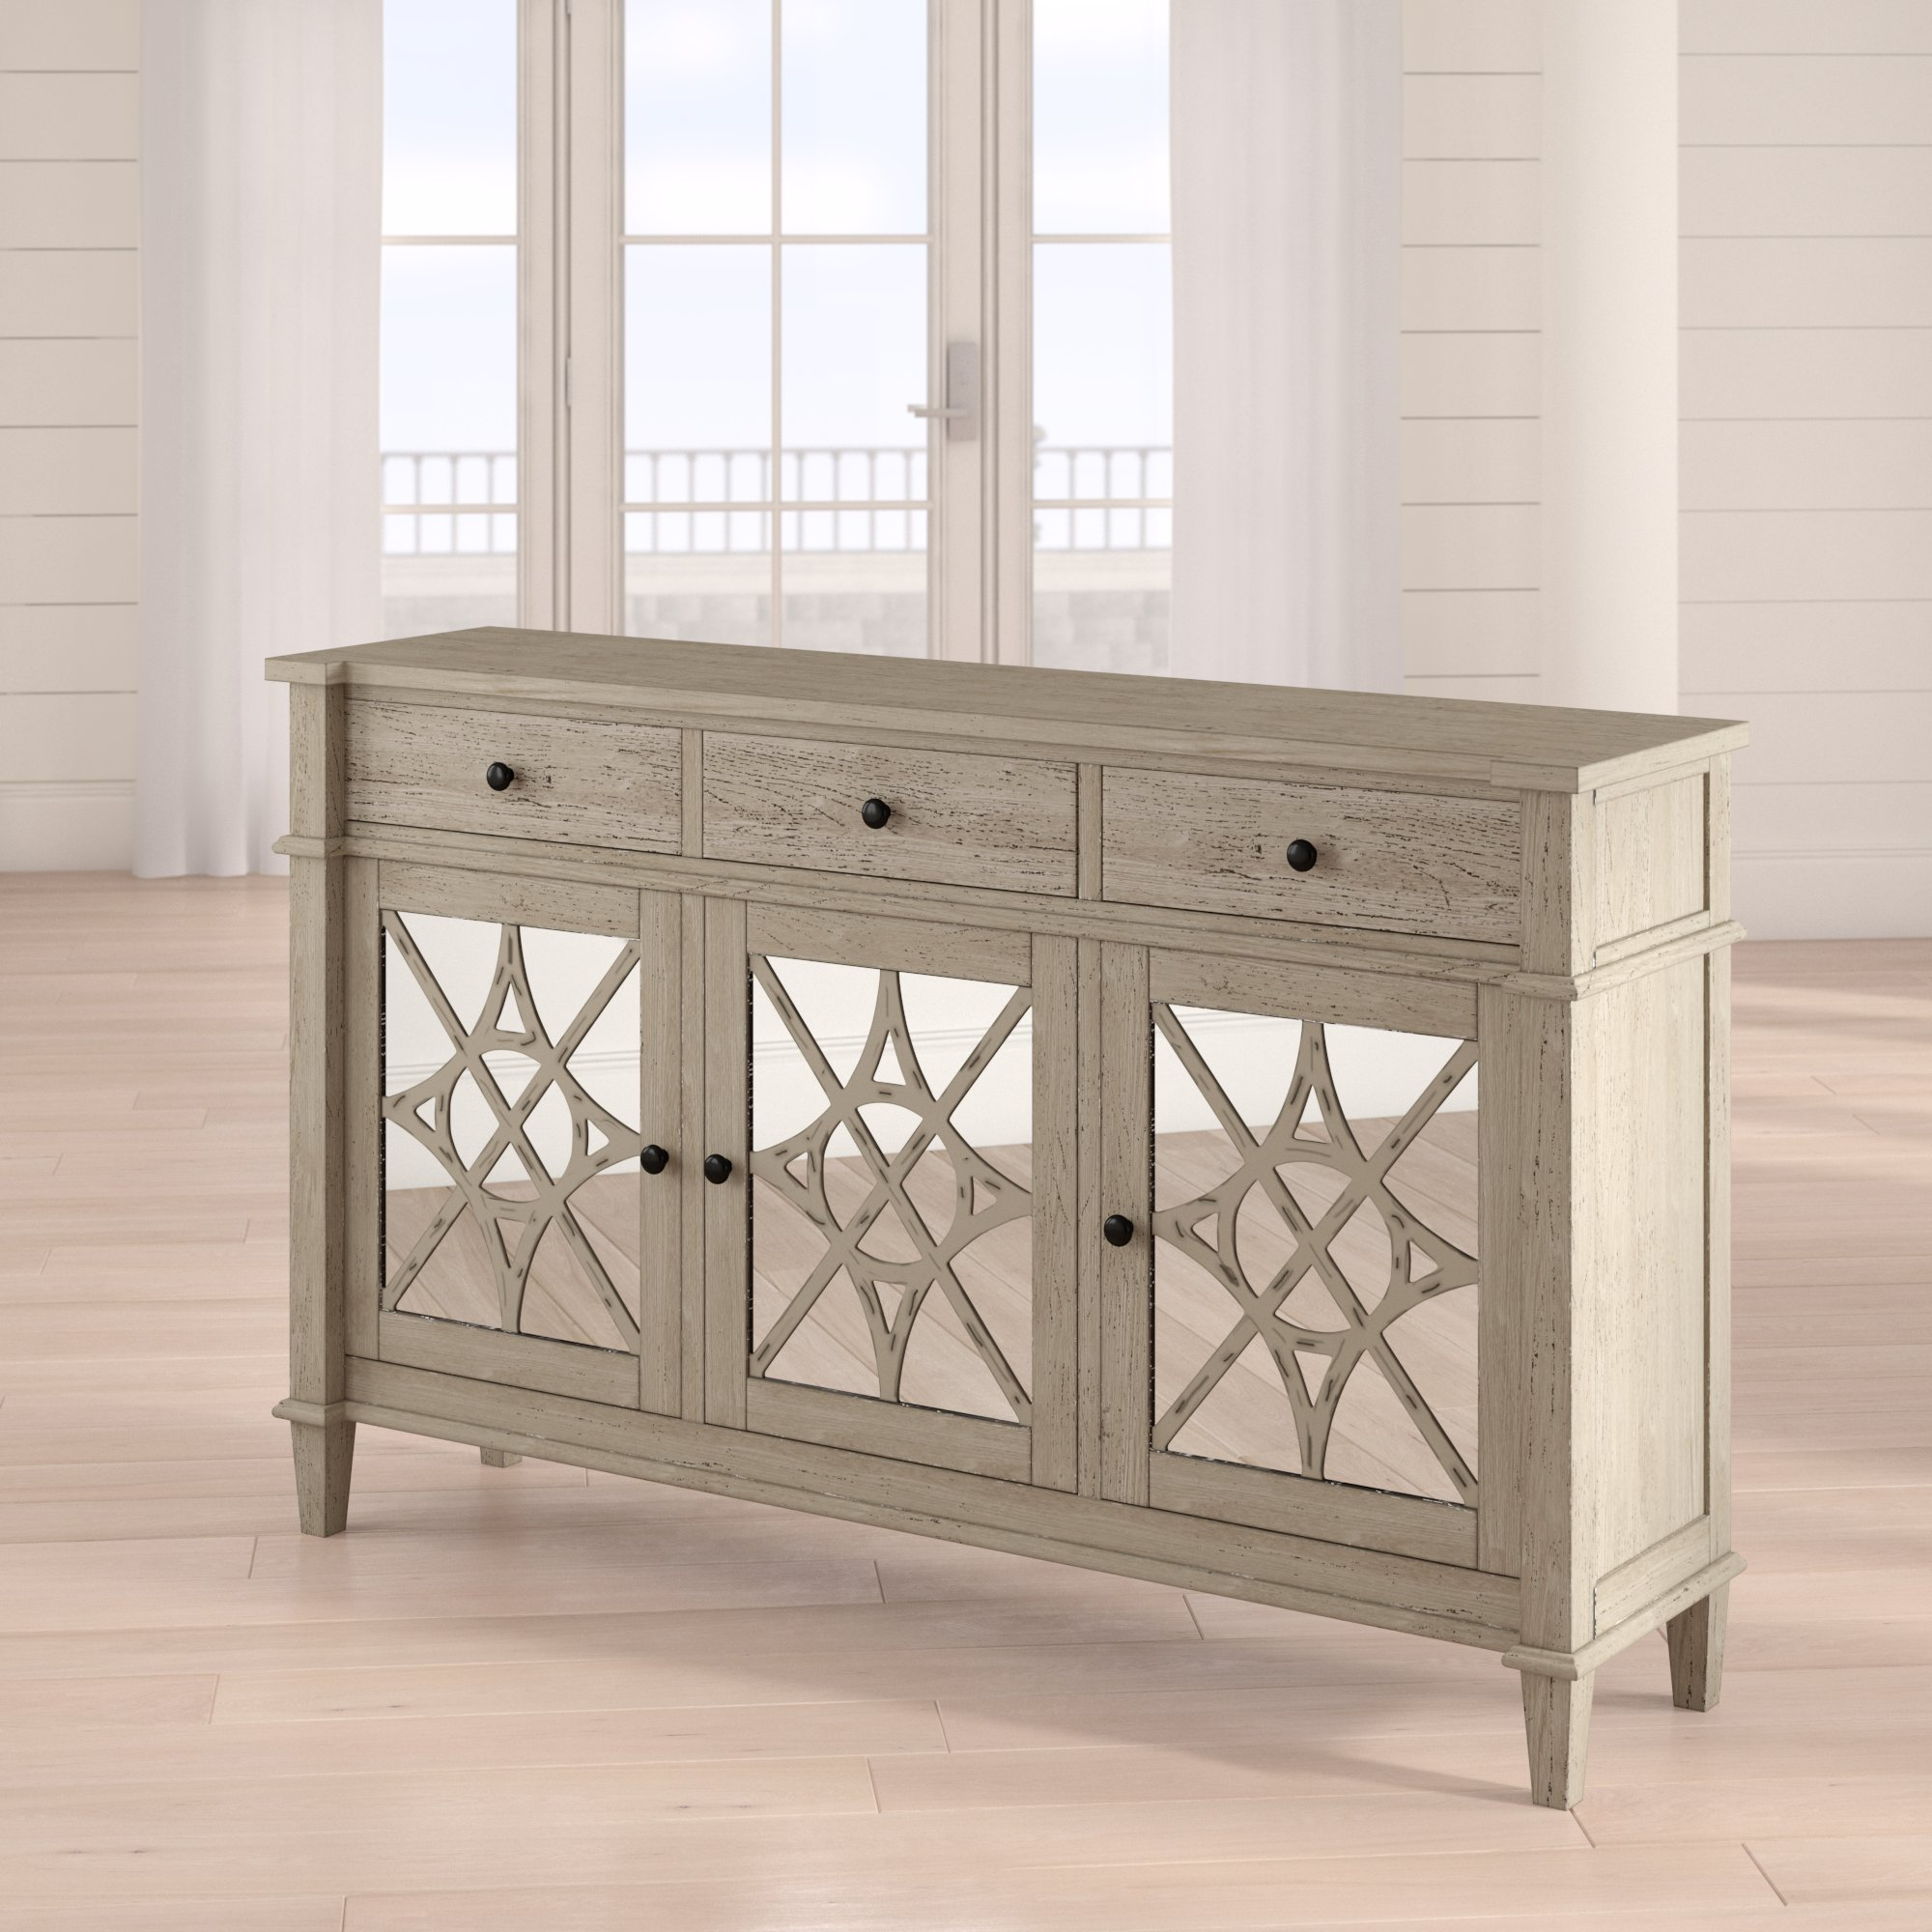 Birch Sideboard / Credenza Sideboards & Buffets You'll Love Pertaining To Tavant Sideboards (View 18 of 30)